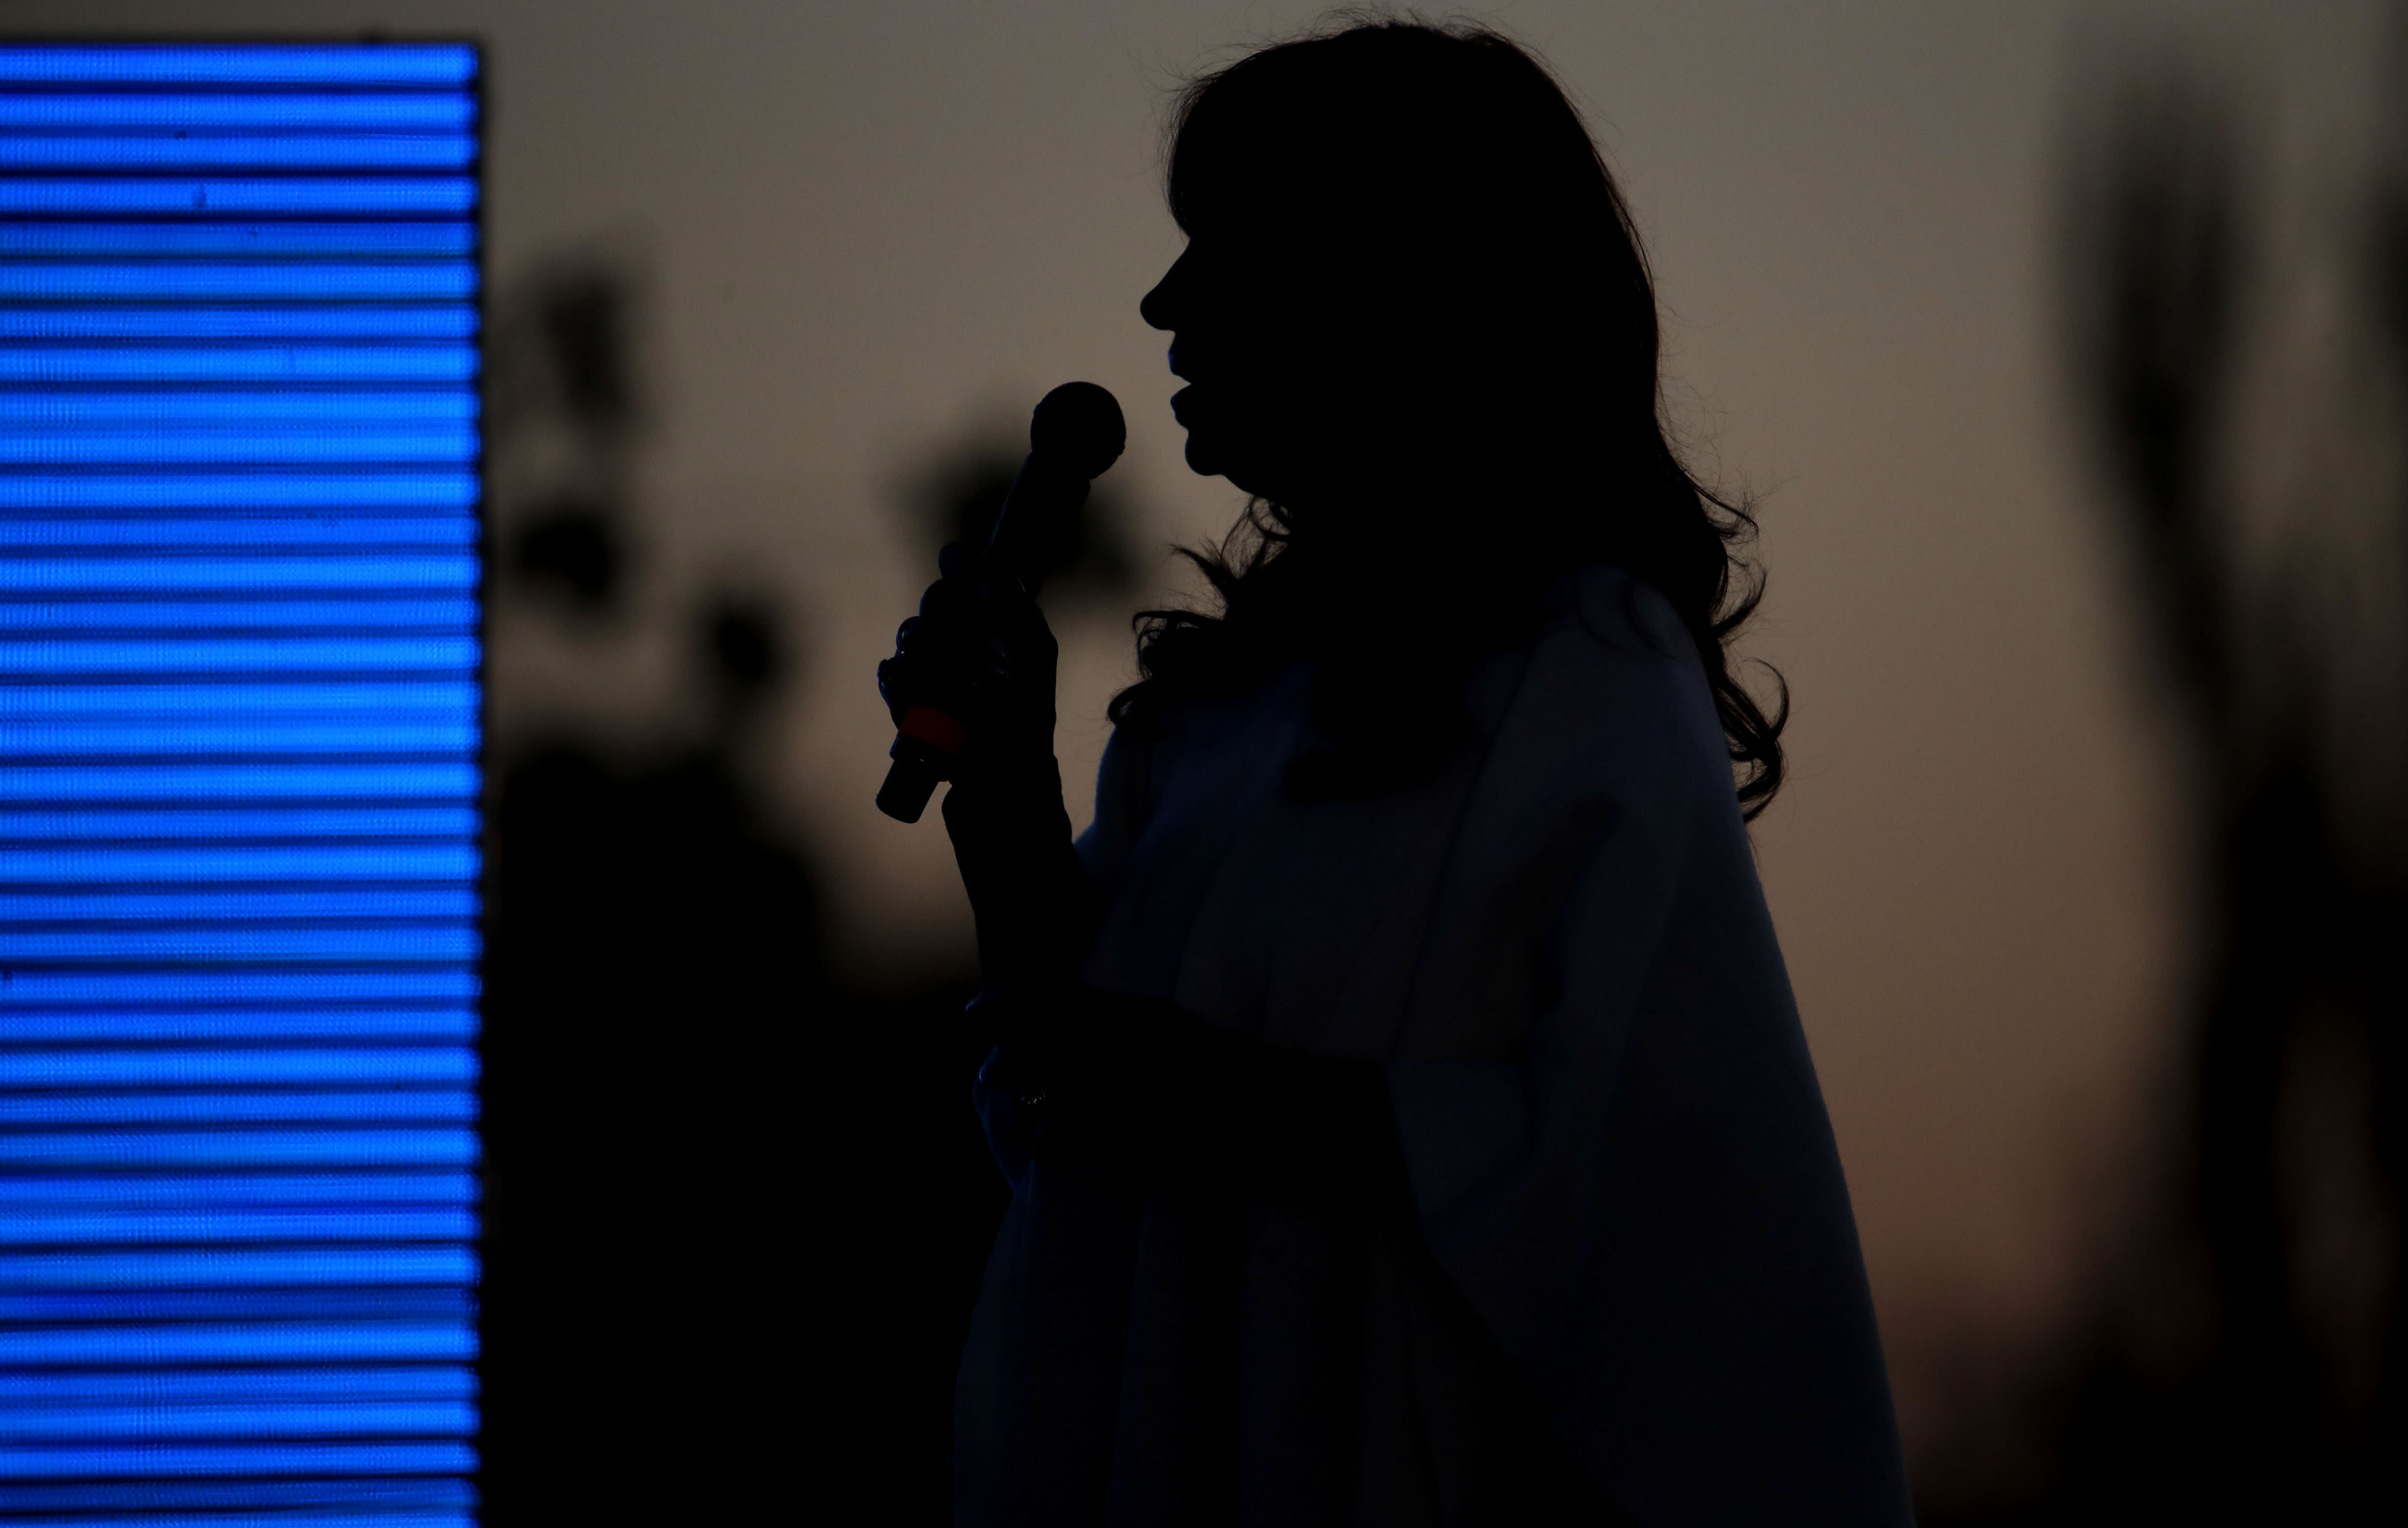 In this Oct. 17, 2019 photo, Cristina Fernandez de Kirchner, Argentina's former president, speaks to supporters during a campaign rally in Santa Rosa, Argentina. 66-year-old Fernández de Kirchner, a senator who succeeded husband Néstor Kirchner as president in 2007 and served two four-year terms, is close to a return to power - this time as a vice presidential candidate - ahead of Oct. 27 elections. (AP Photo/Natacha Pisarenko)